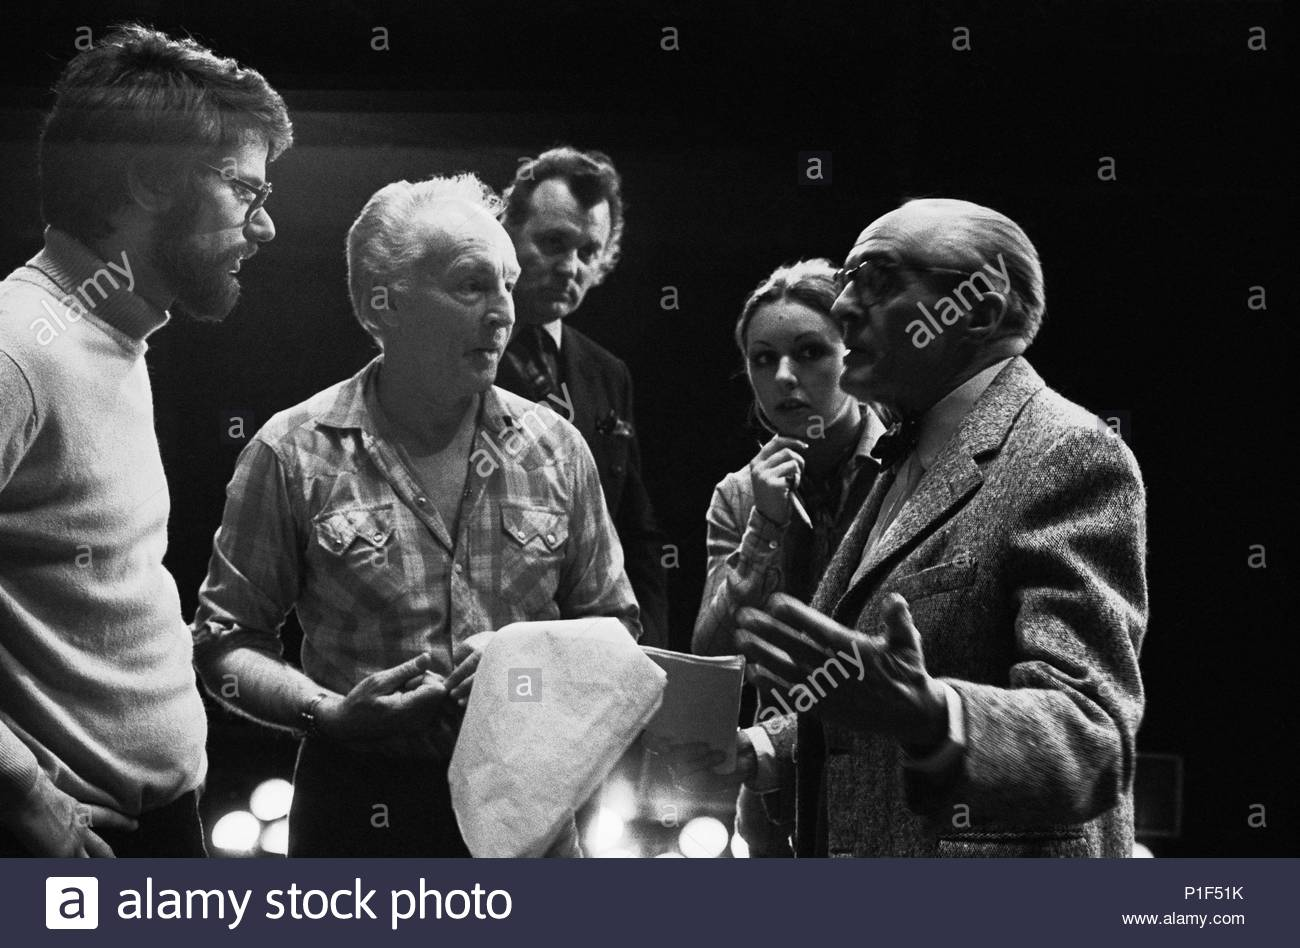 Director Rene Clair (right) talking to choreographer Georges Balanchine (center with open shirt) and Michael Dietmann,assistant to Rolf Liebermann. Location: Opera House Palais Garnier, Paris, France. - Stock Image